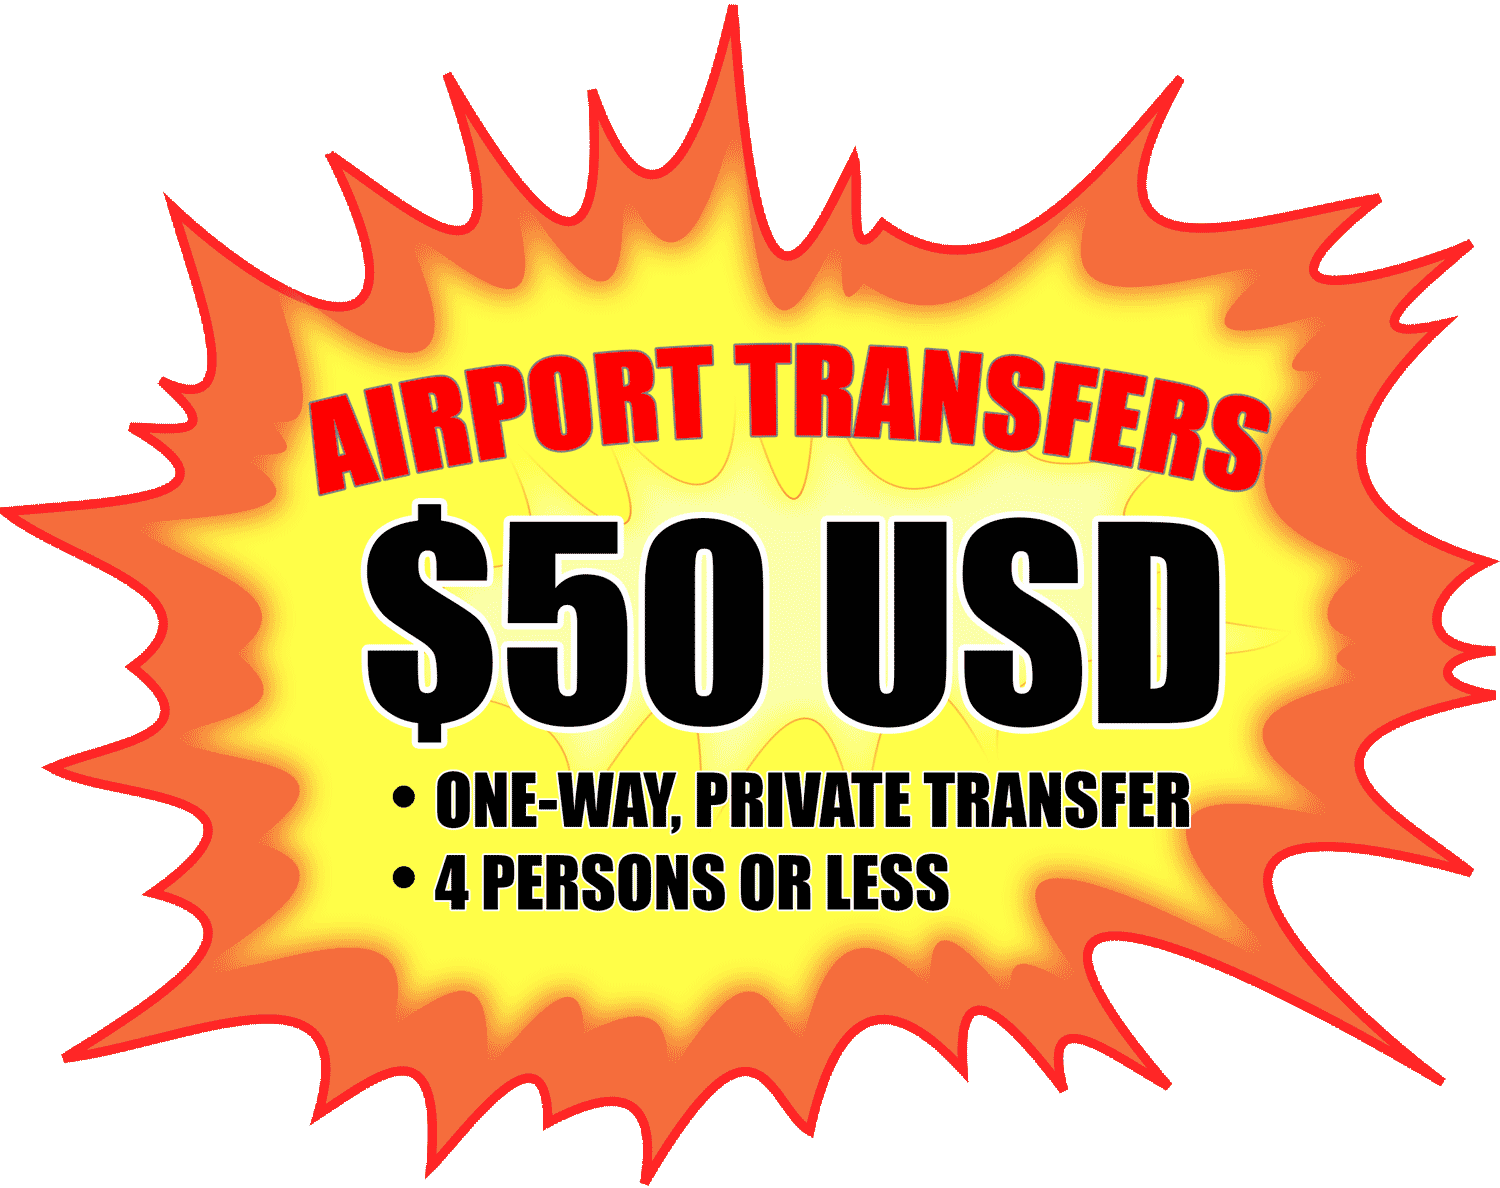 50-usd-airport-transfer-graphic